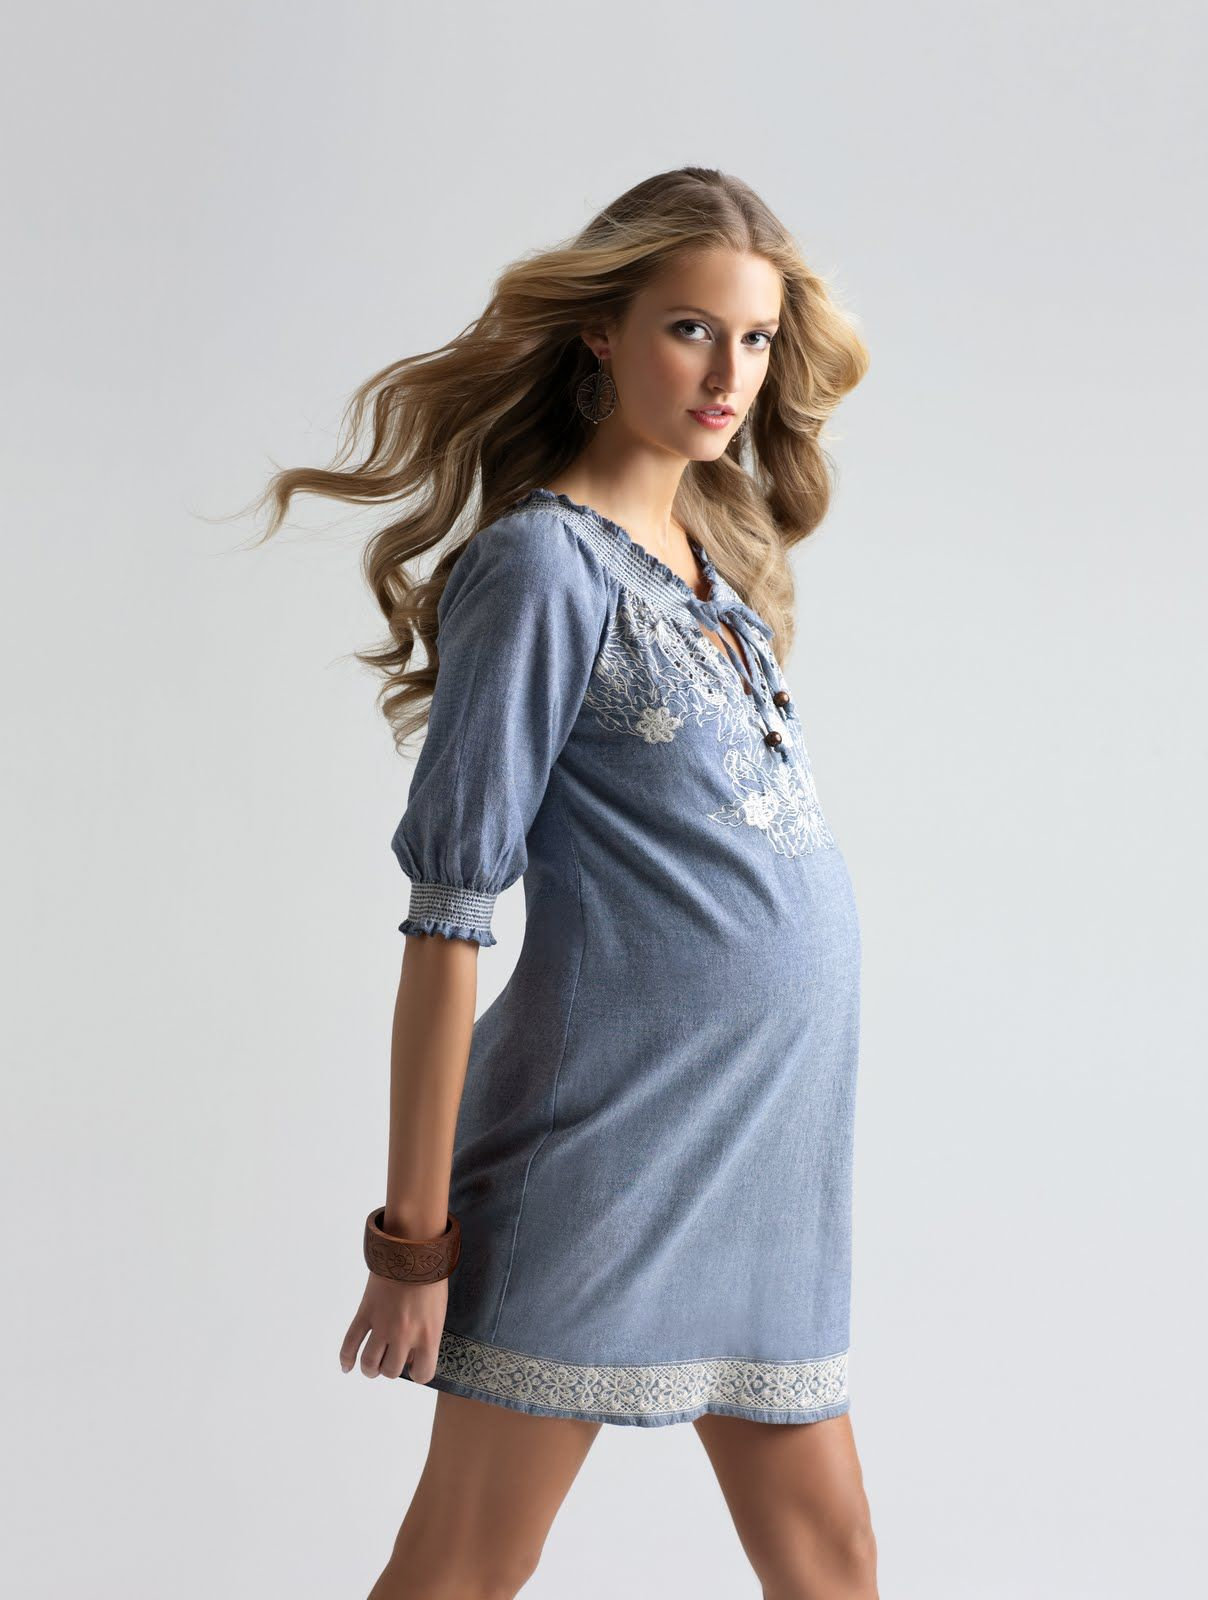 Beautiful Summer Maternity Clothes | Maternity Dresses | Pinterest ...